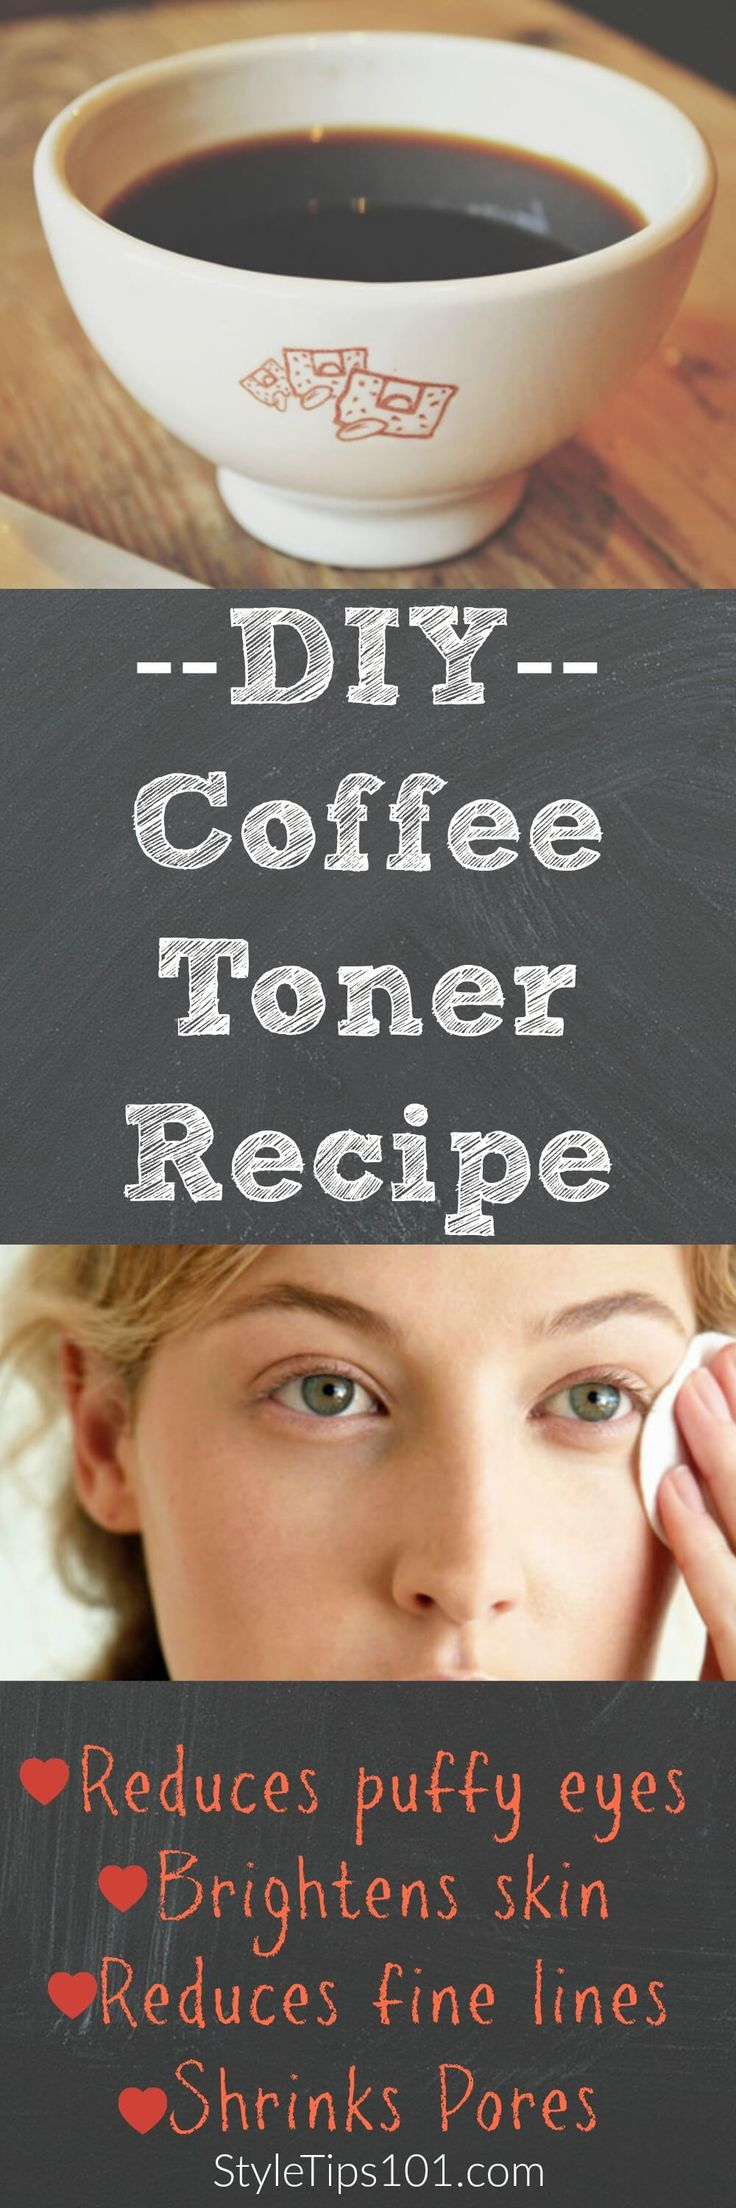 Cold coffee can reduce puffiness and brighten skin! via @styletips1o1